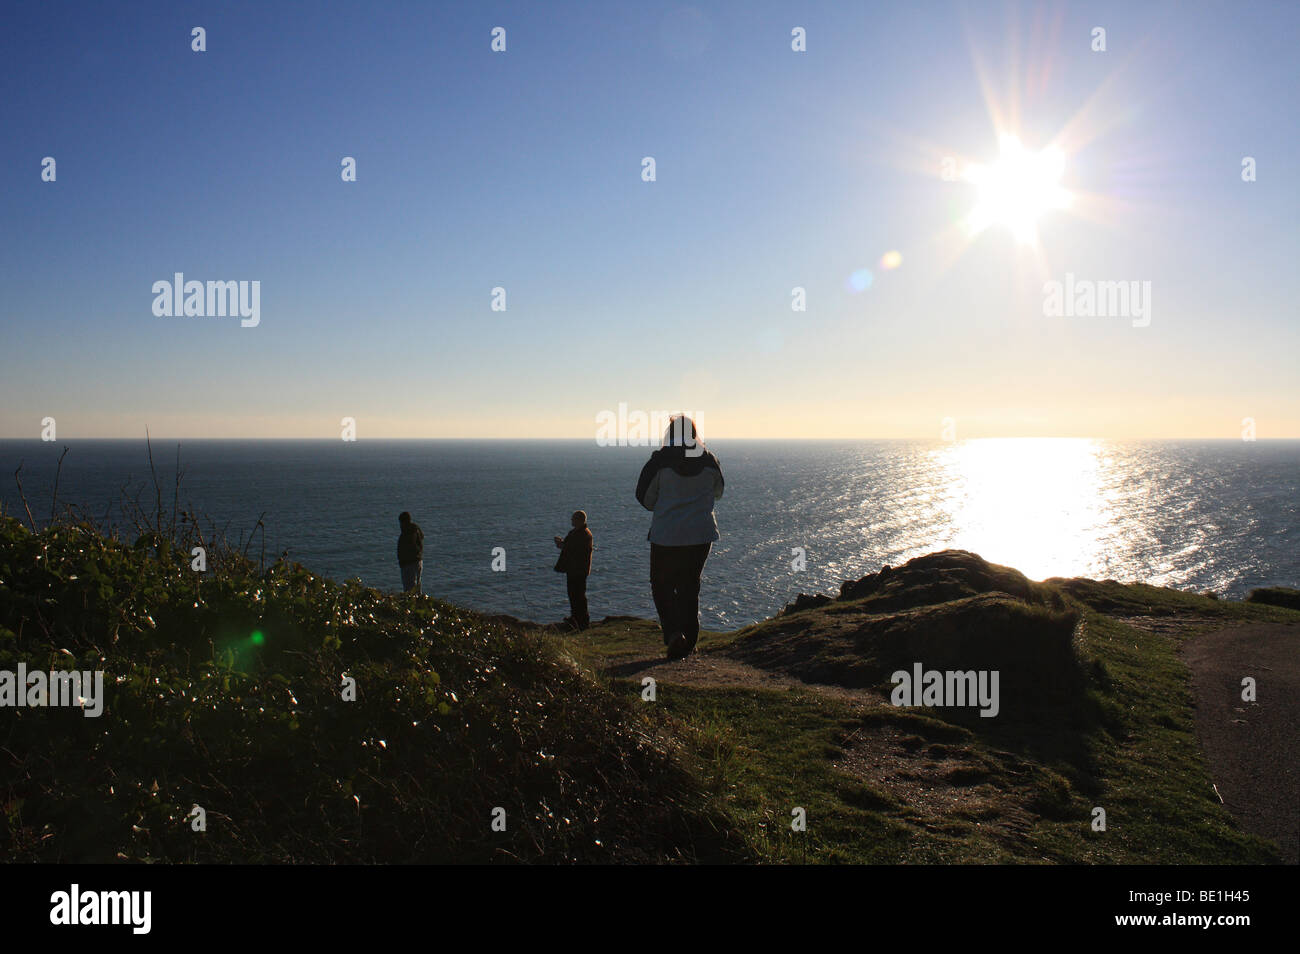 Walkers at Penlee Point near Rame Head southeast Cornwall, England, UK. - Stock Image